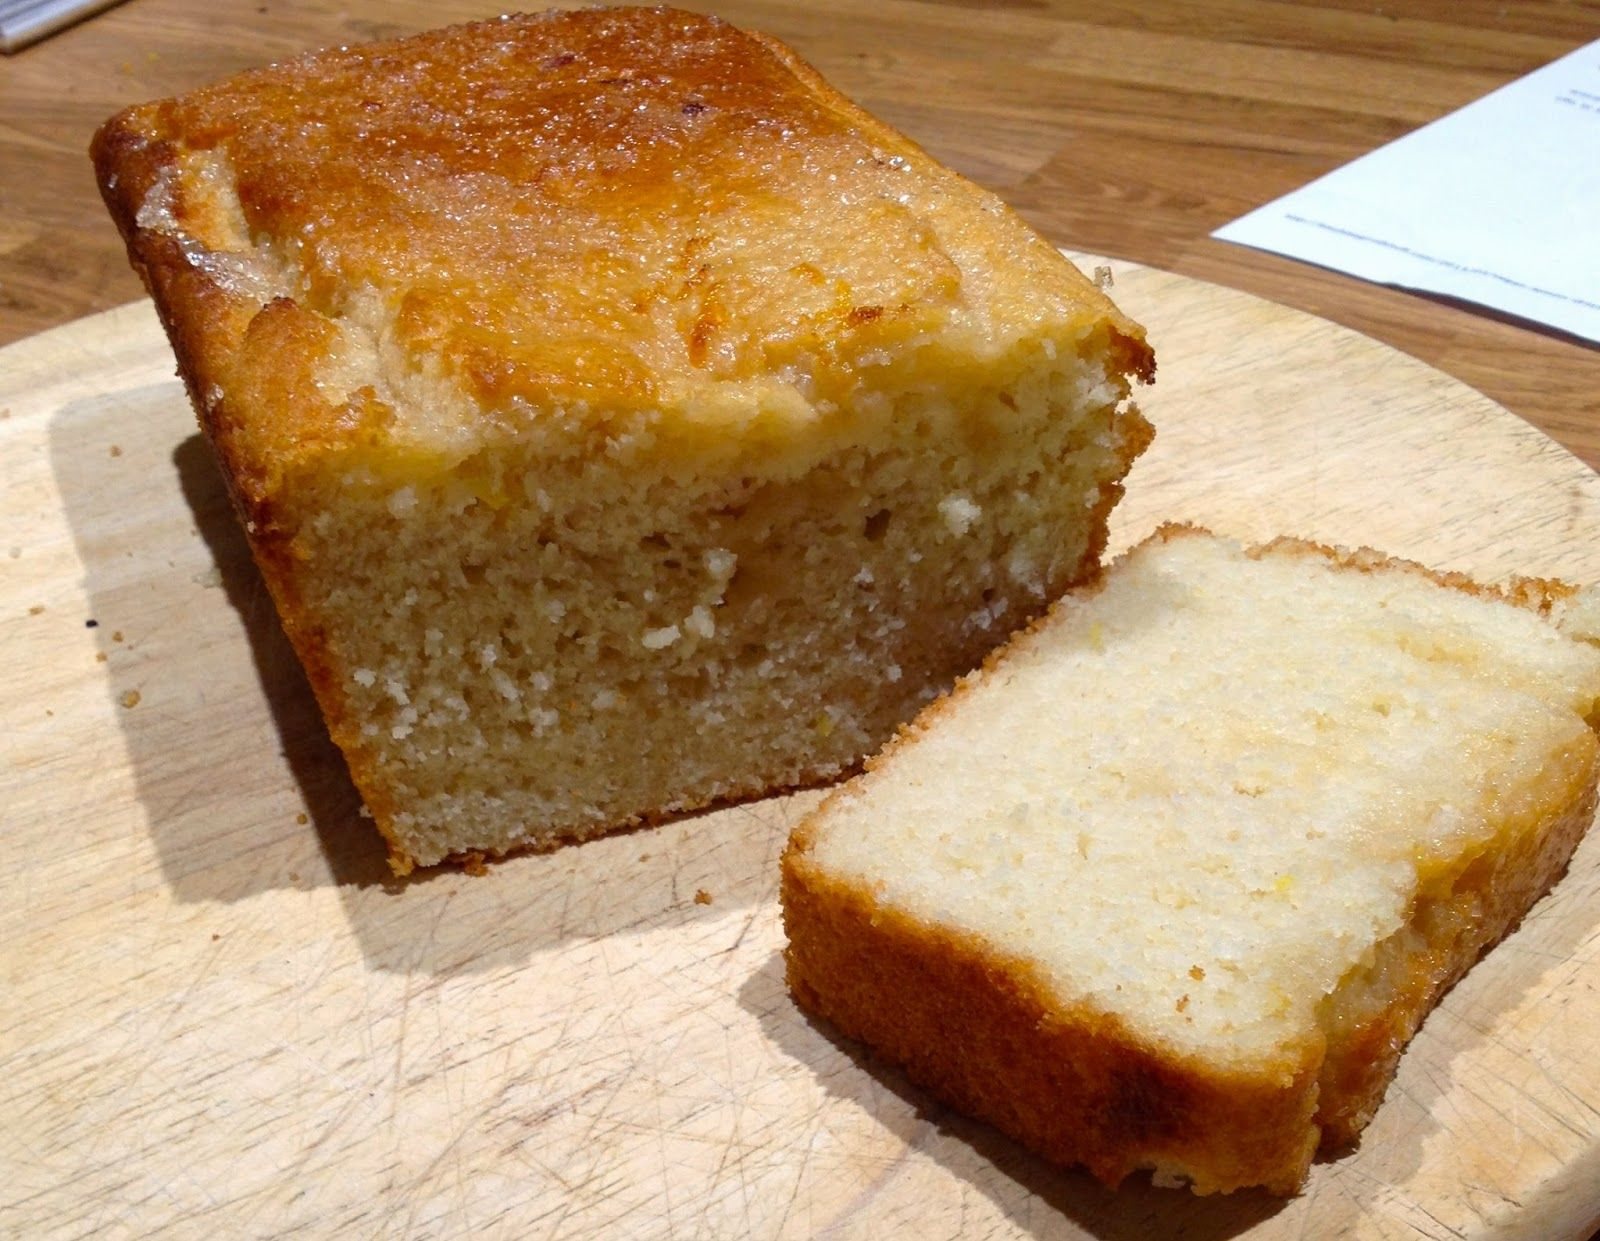 Just what I needed – lemon drizzle cake